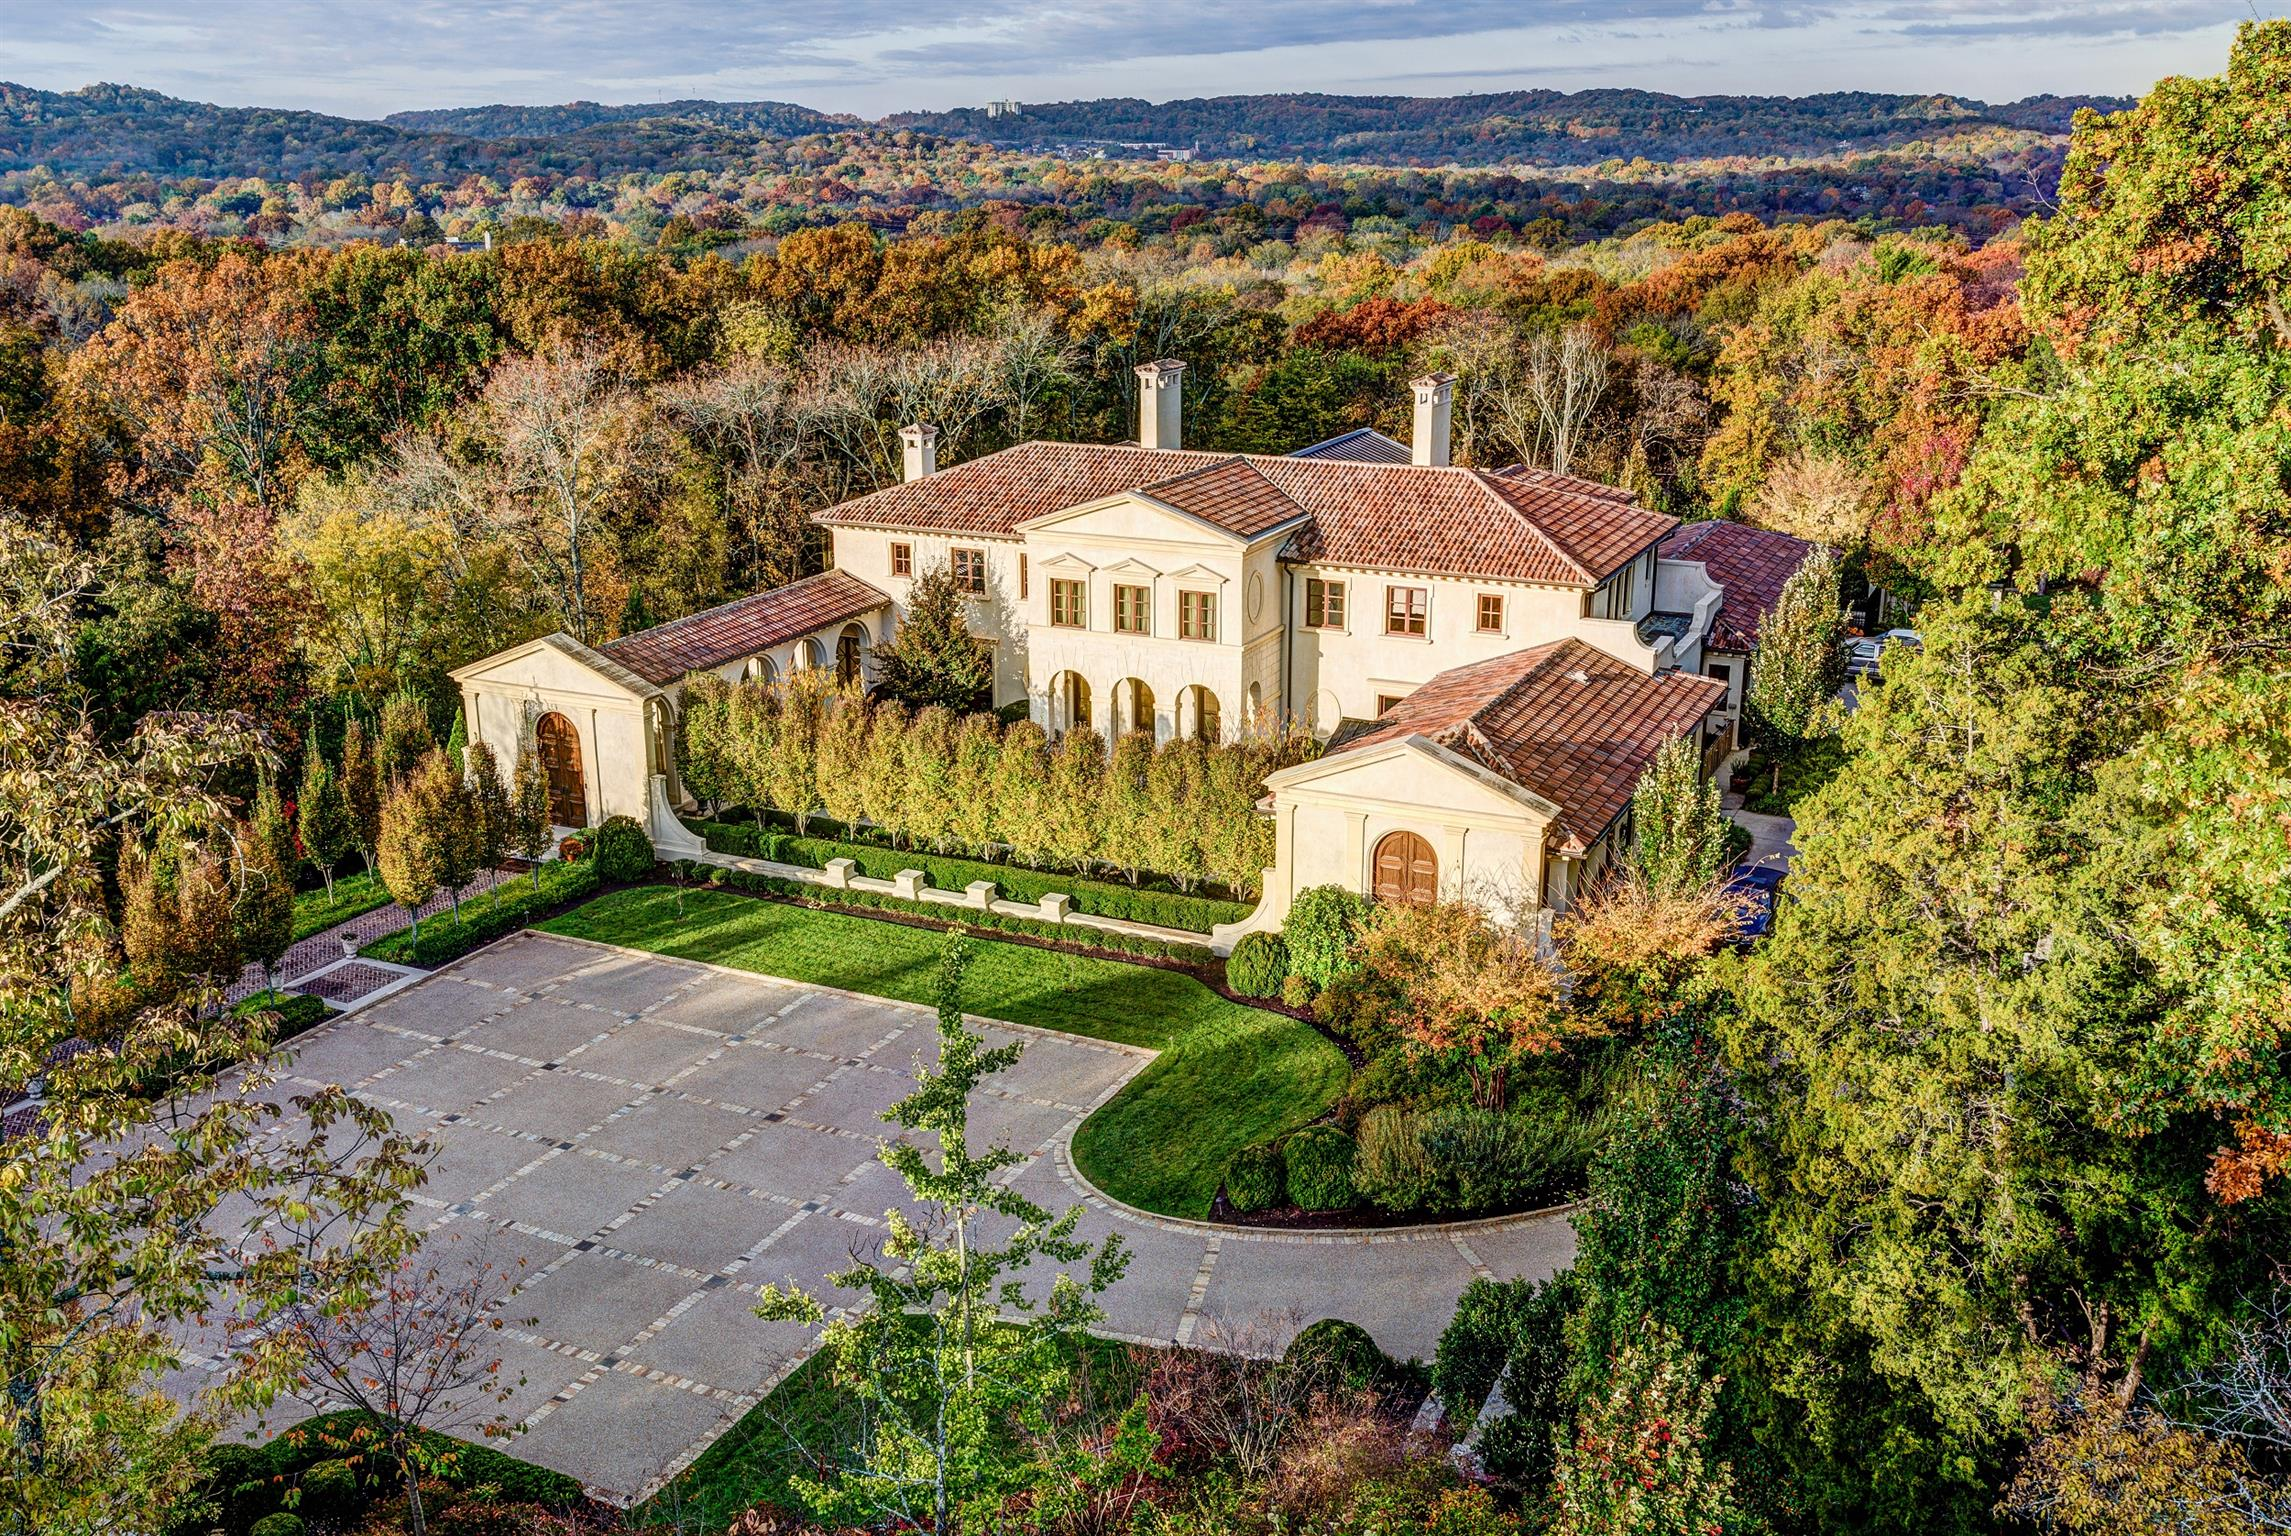 Nestled into the rolling hills of the landscape, this Palladian/Neo-Classical proportioned residence was heavily influenced by Santa Barbara Spanish Colonials popularized in the early 1920's & 30's Steel framed, brick veneered, then in stucco with hand-cut limestone accents and barreled tile roof. Marvin mahogany windows & doors thruout.